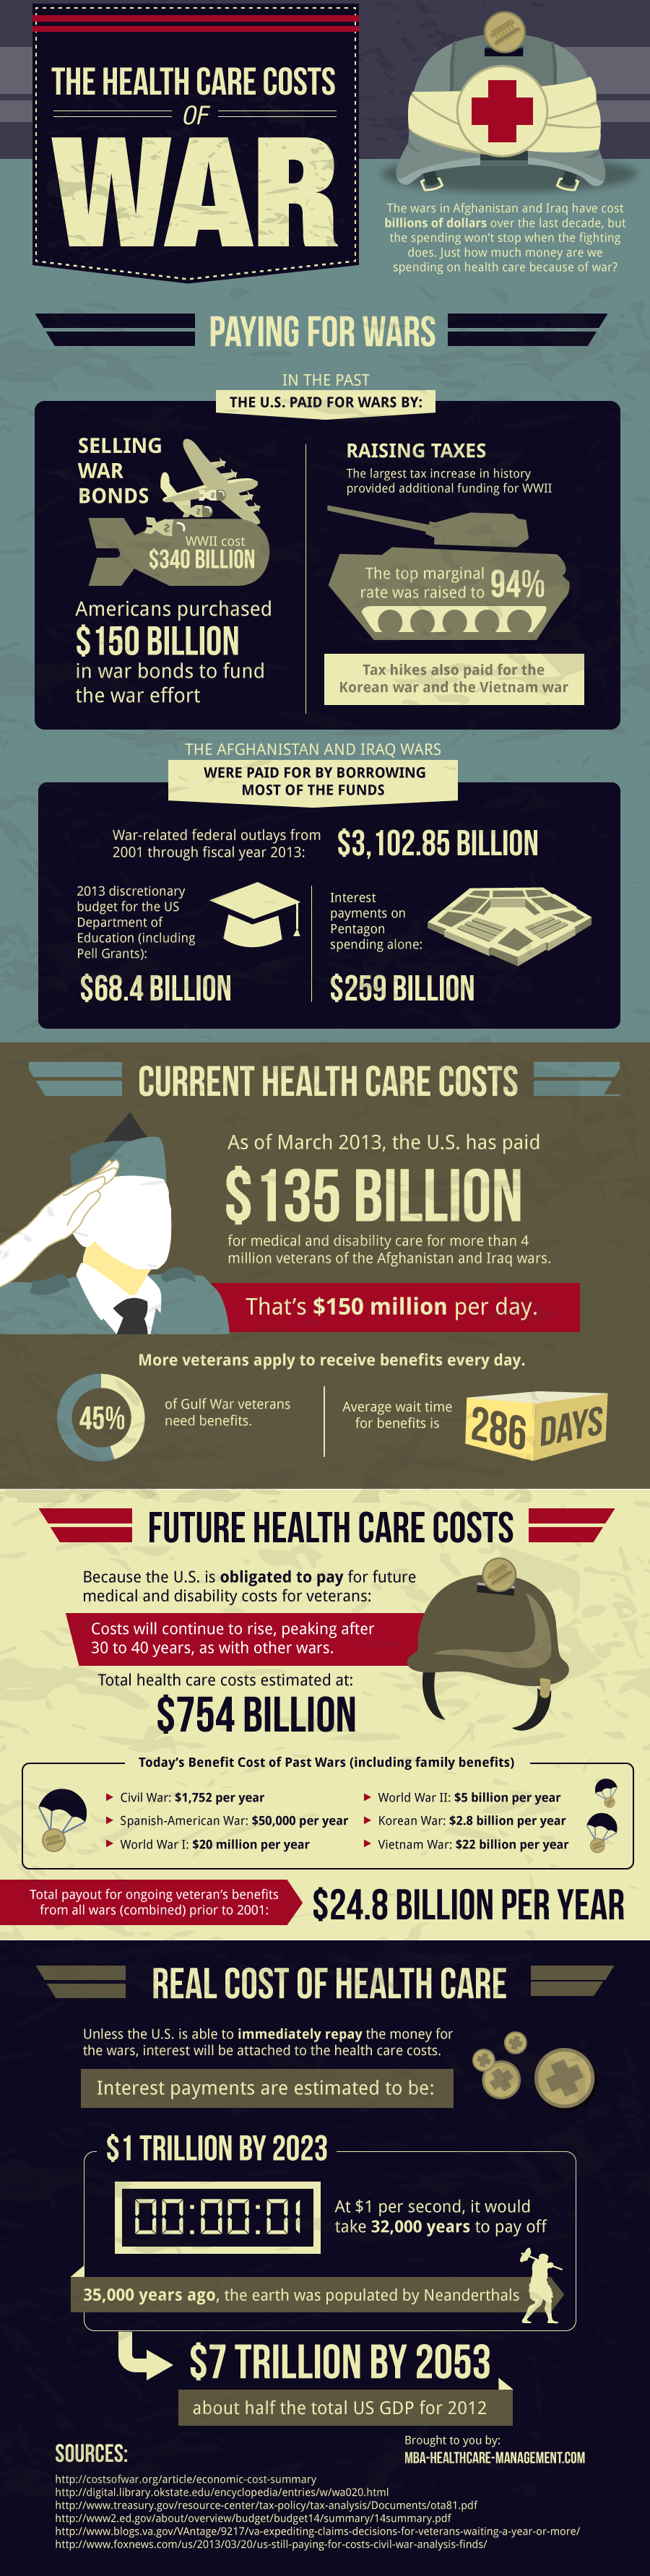 The Healthcare Costs of War